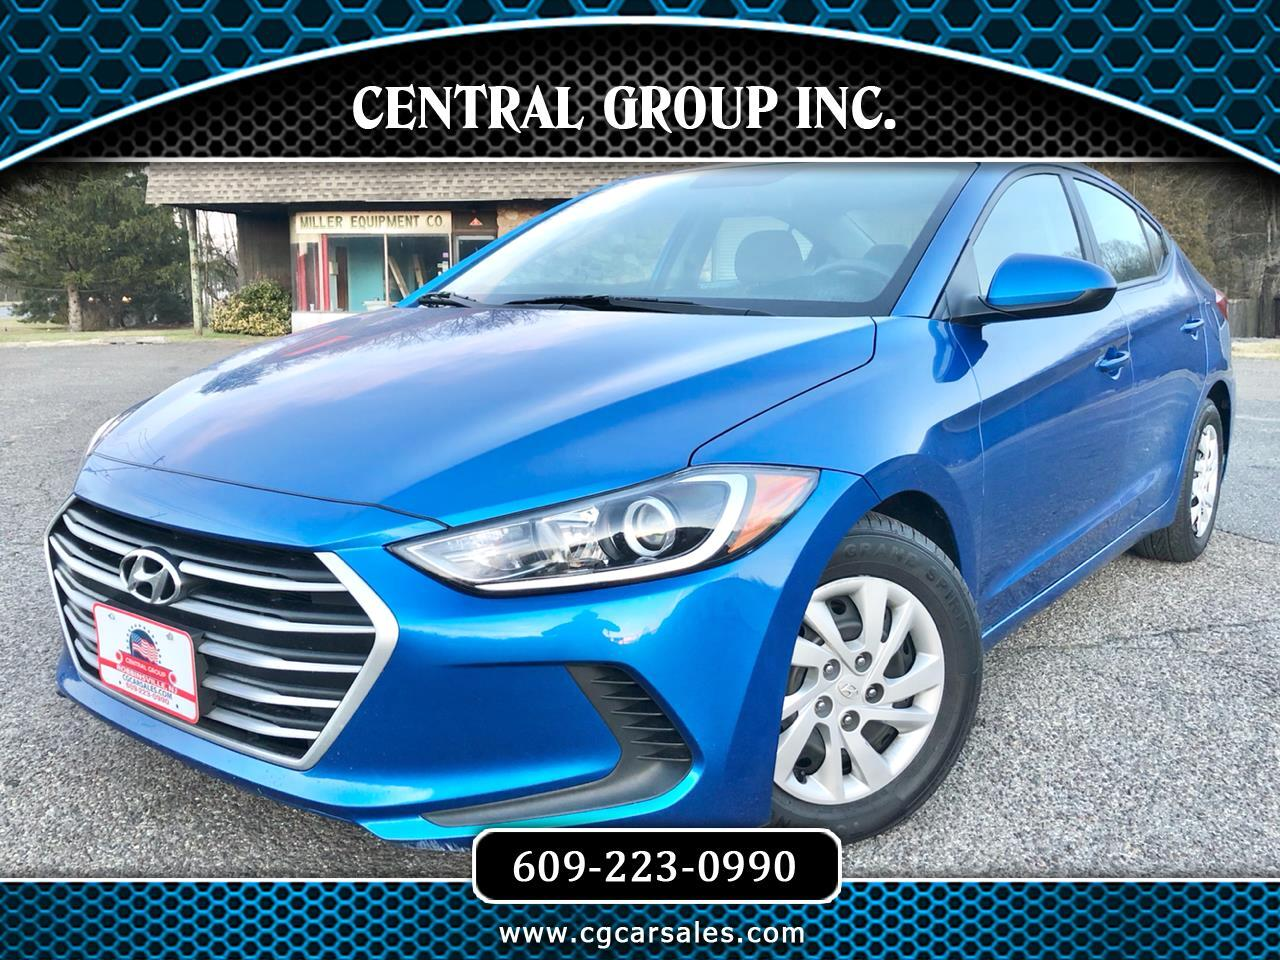 Hyundai Elantra SE 2.0L Auto (Alabama) *Ltd Avail* 2017